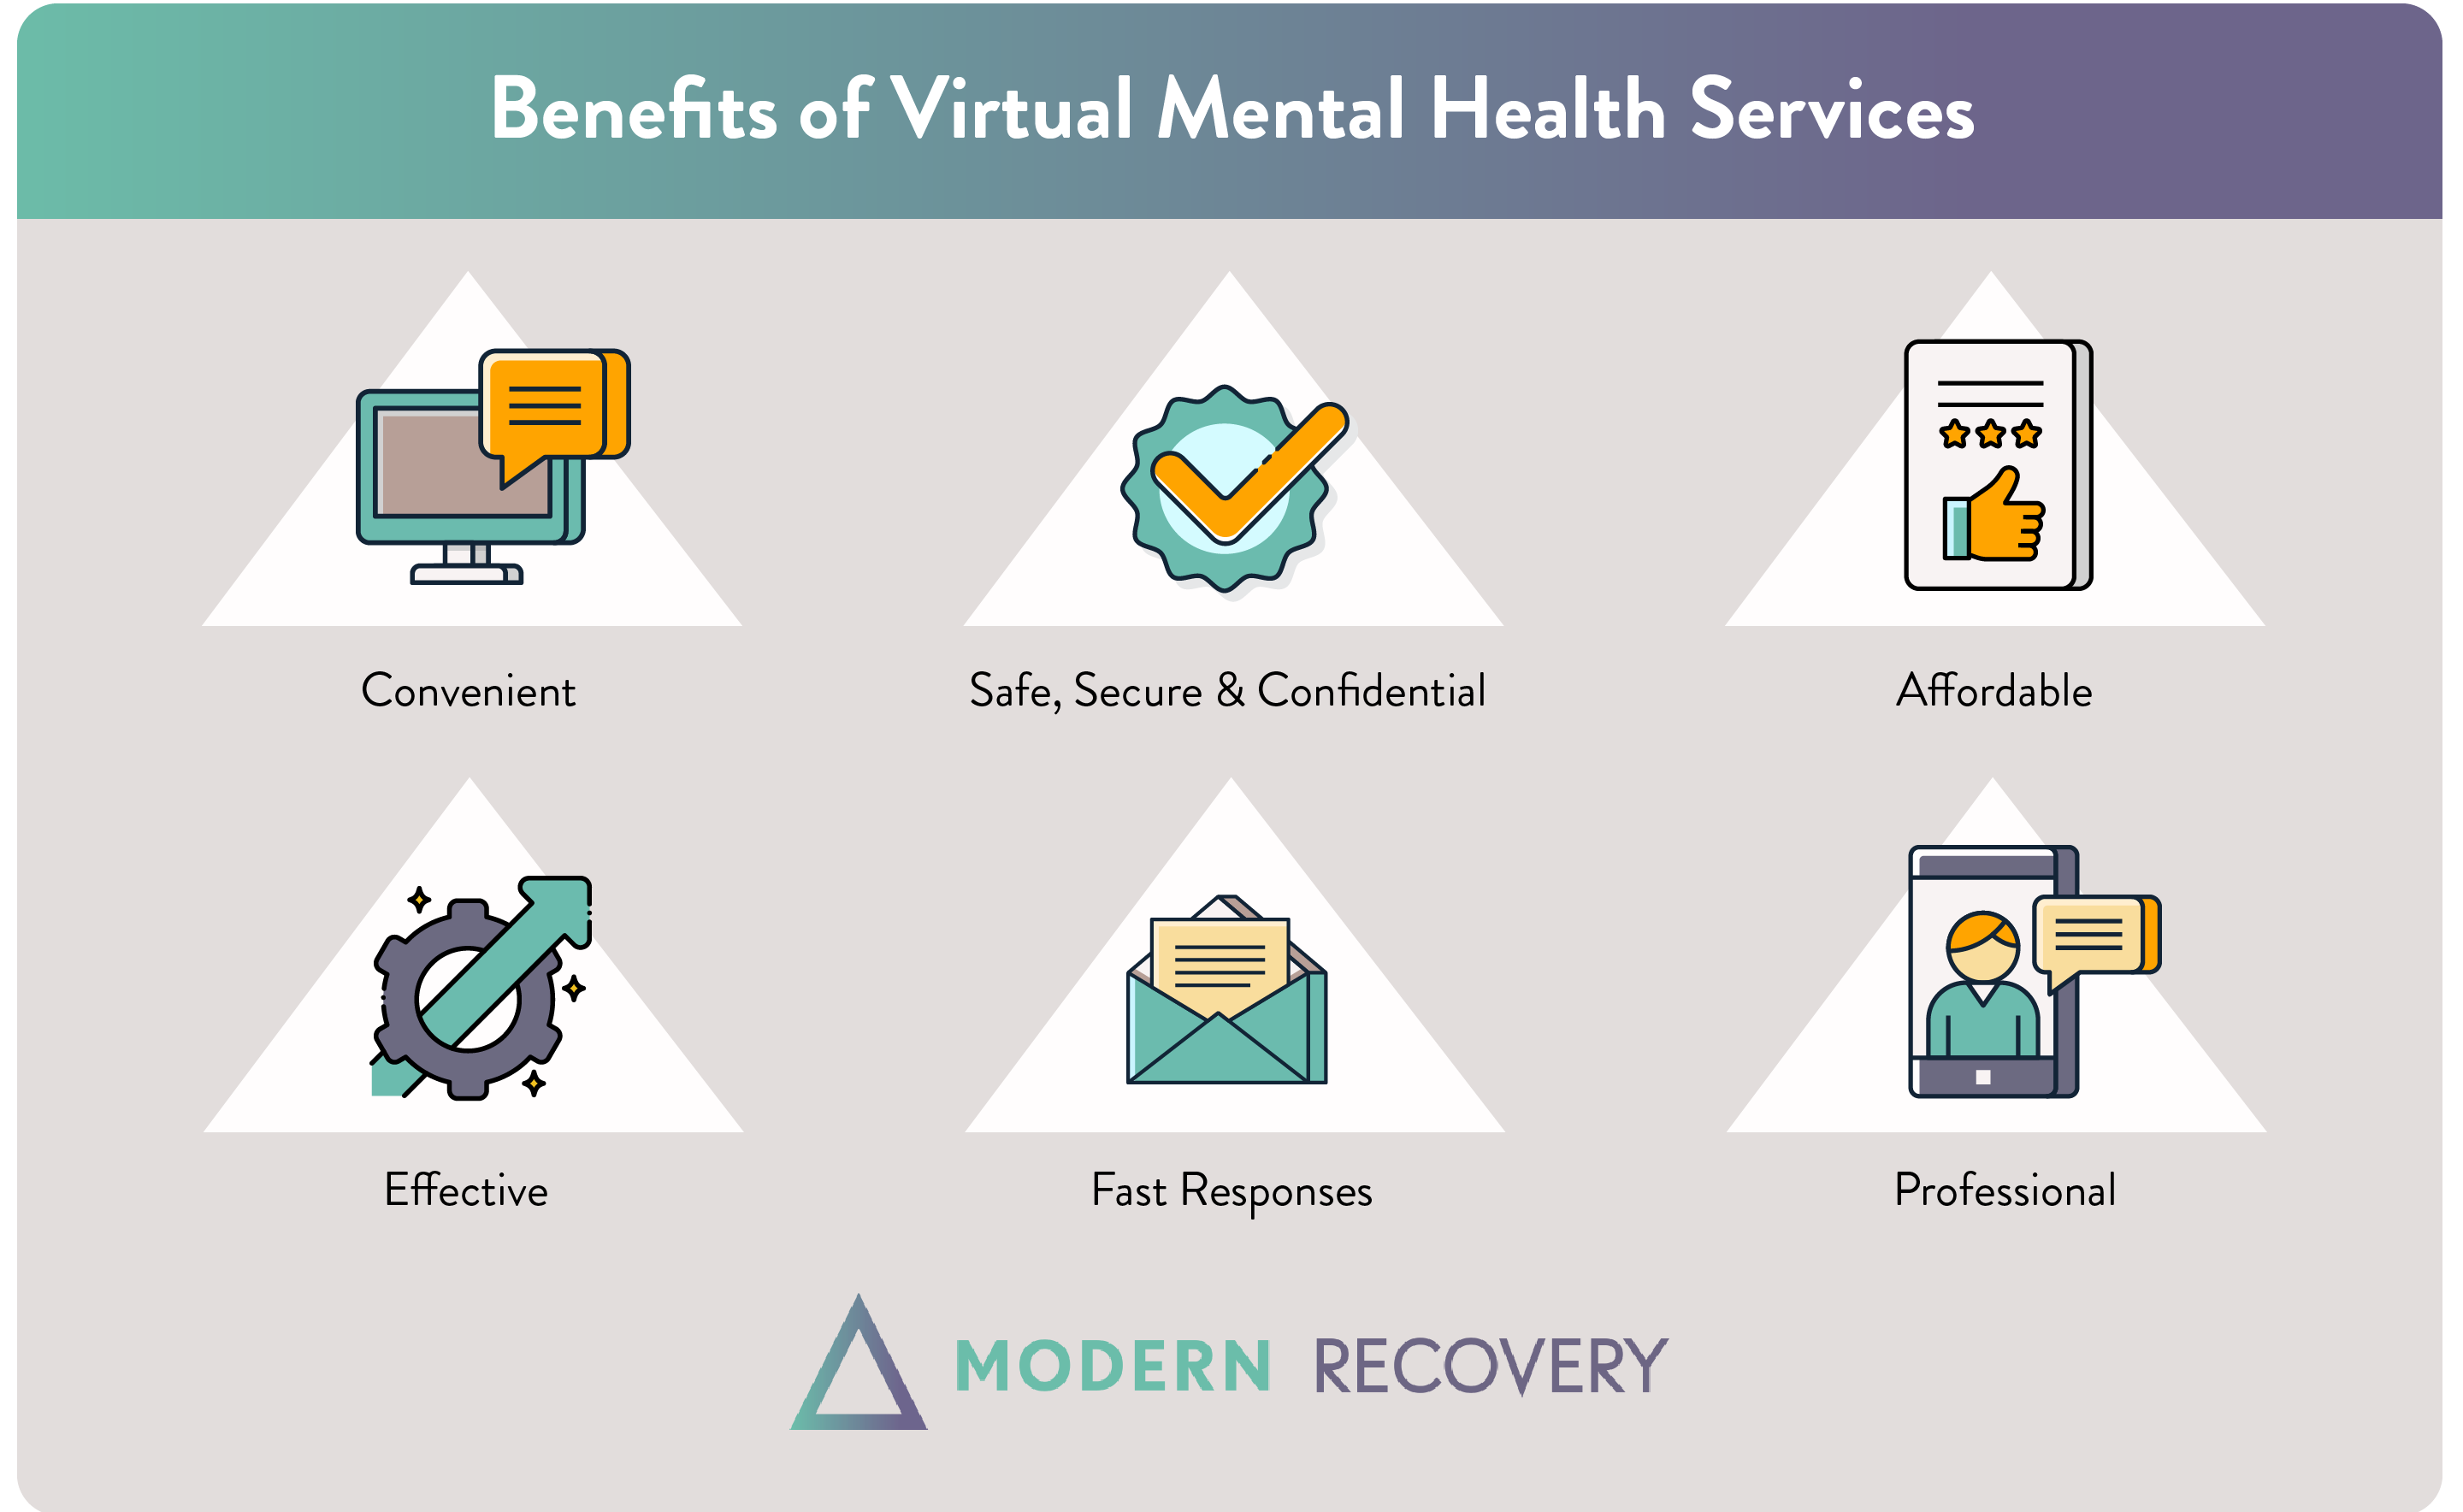 Benefits of Virtual Mental Health Services